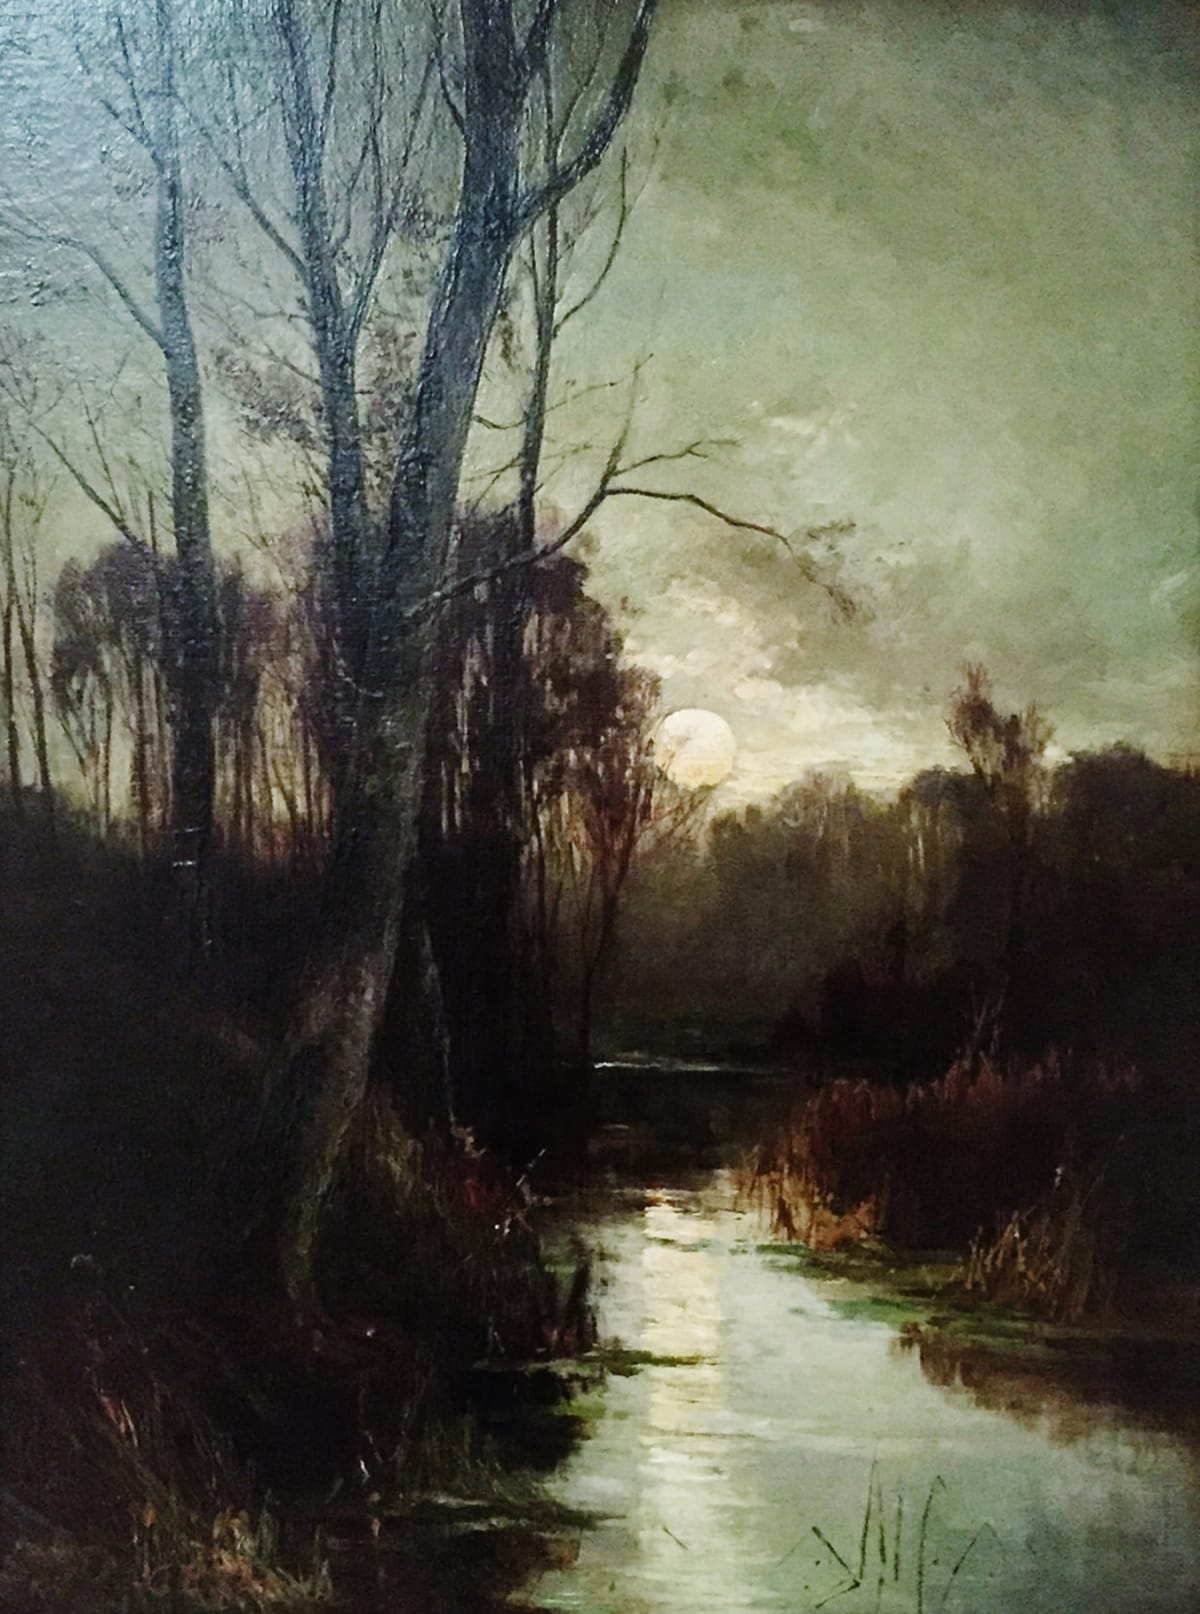 Charles Ethan Porter Landscape (Trees with Lit Stream), 1879.0 Oil on Canvas 24 1/2 x 18